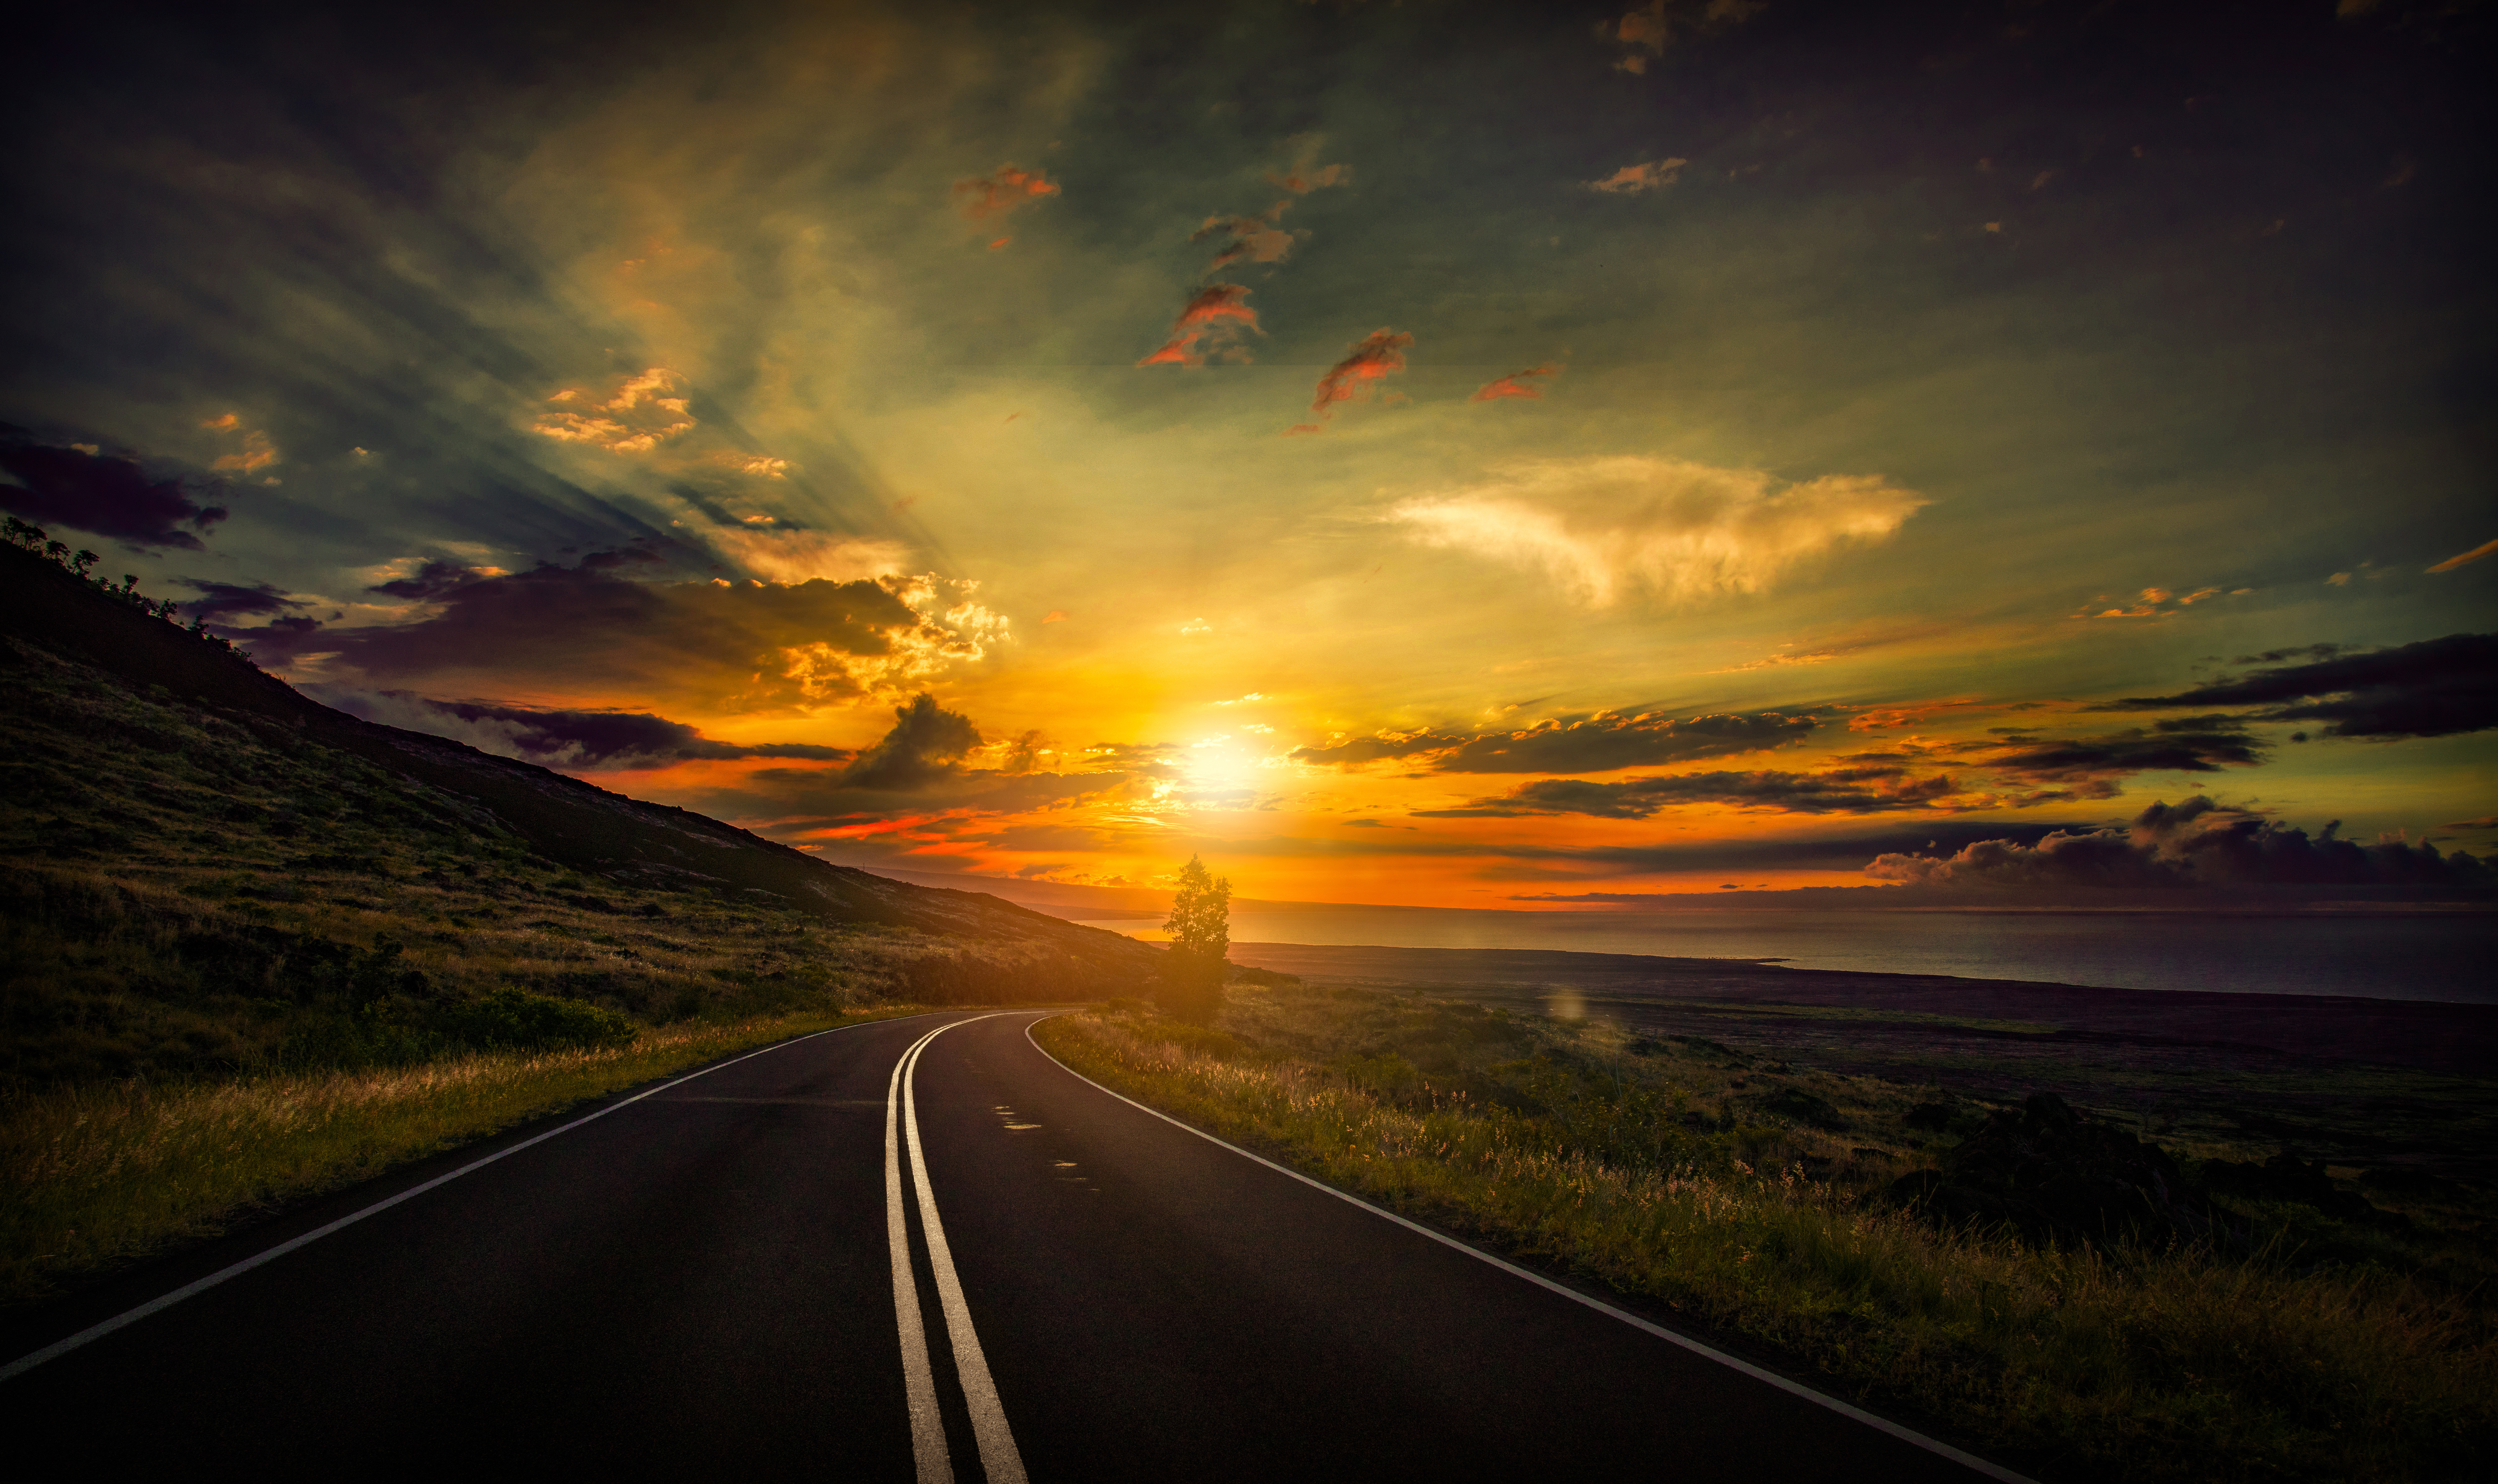 Cool Sunset Road View 8k, HD Nature, 4k Wallpapers, Images ...